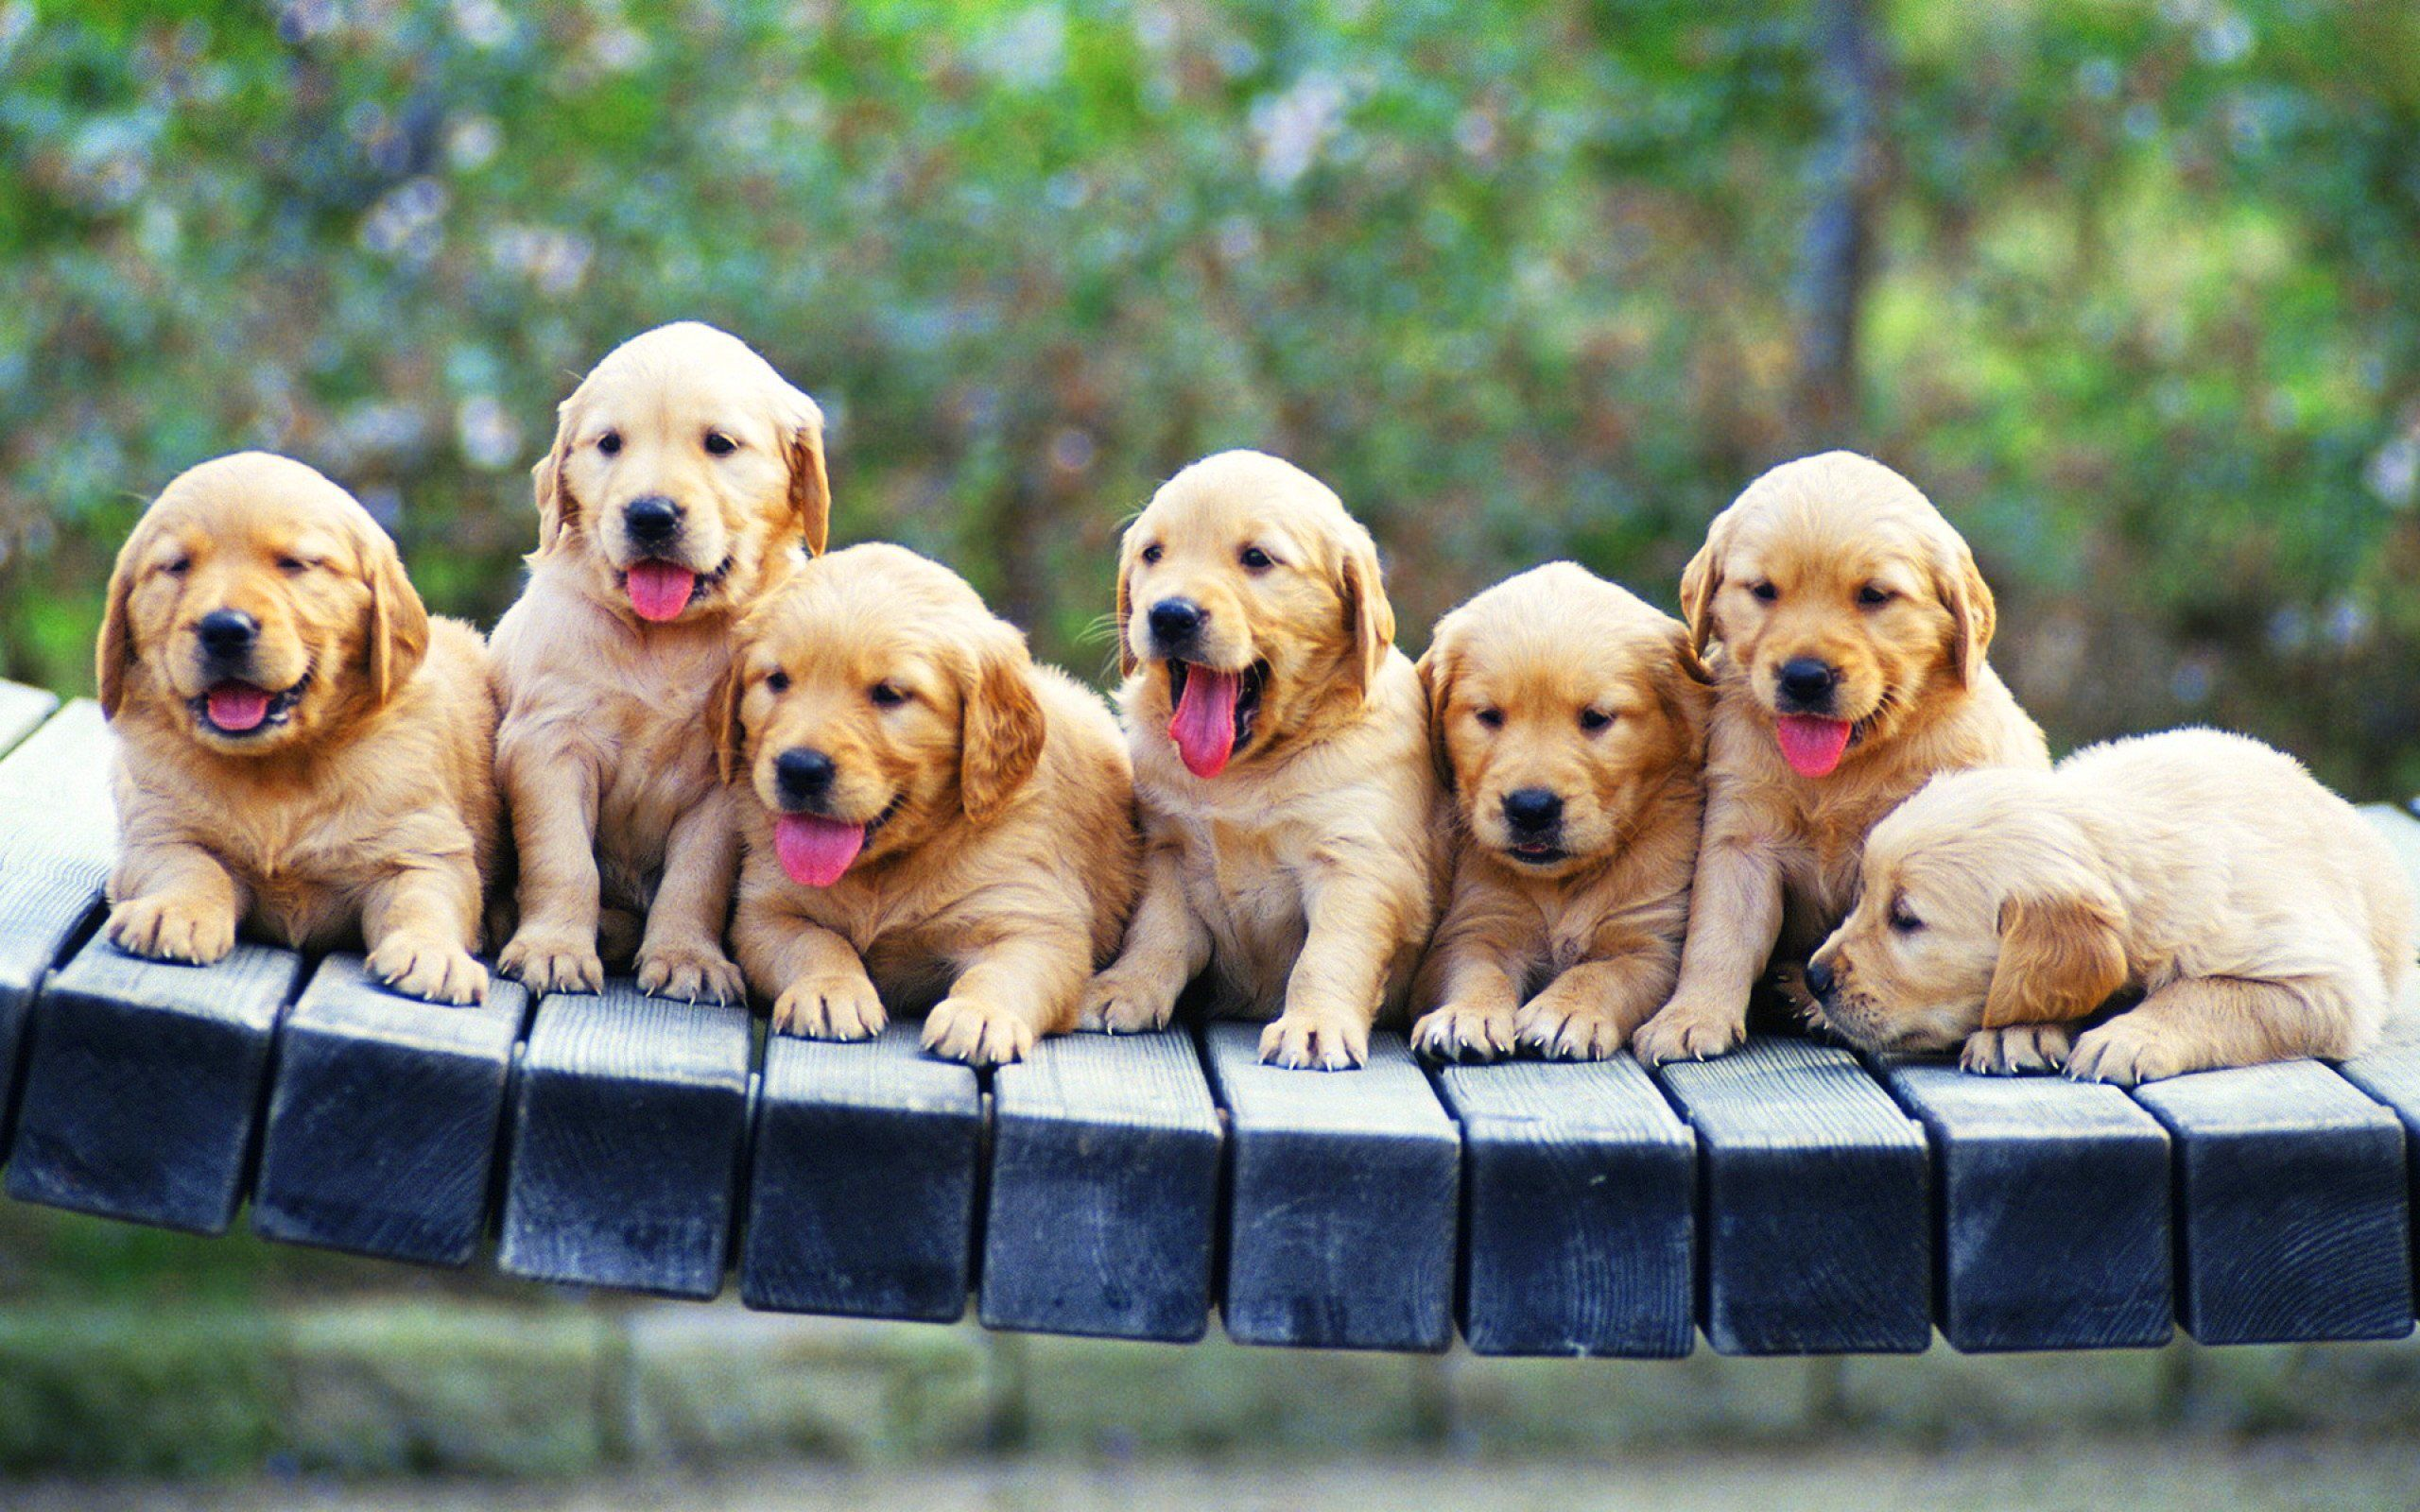 Golden Retreviers Seven Golden Retriever Puppies Dogs Golden